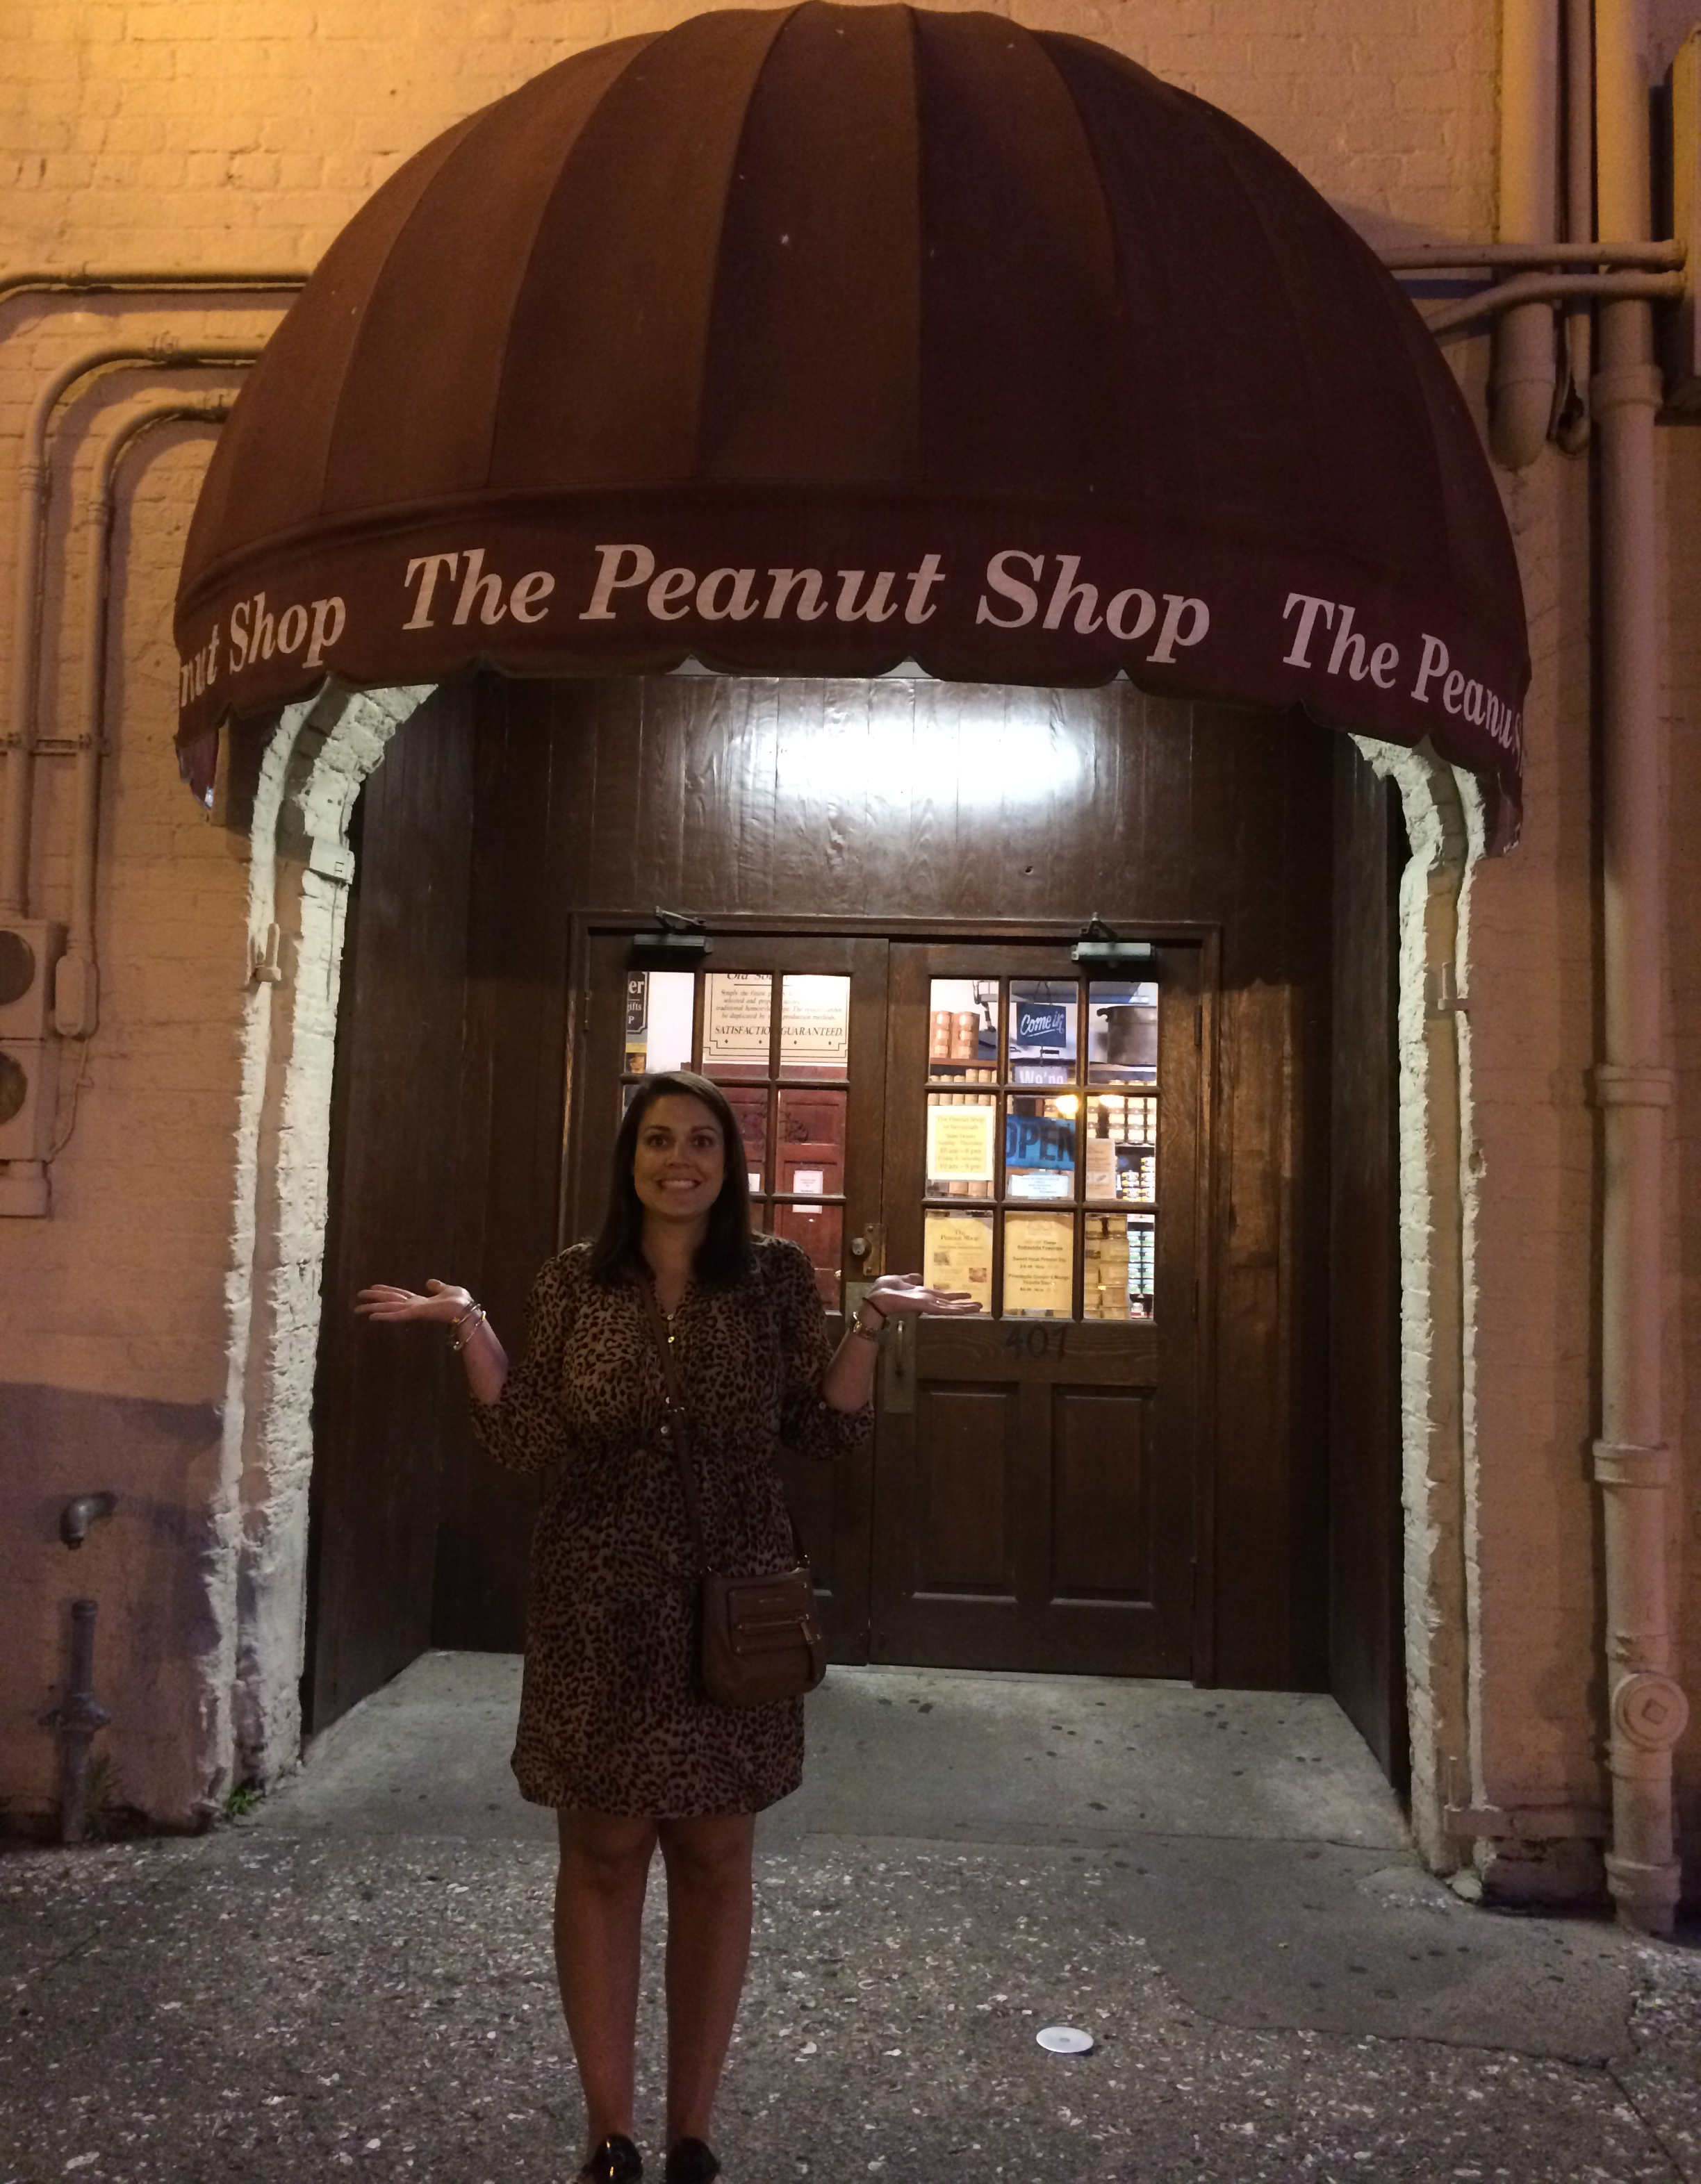 Sidney in front of The Peanut Shop.